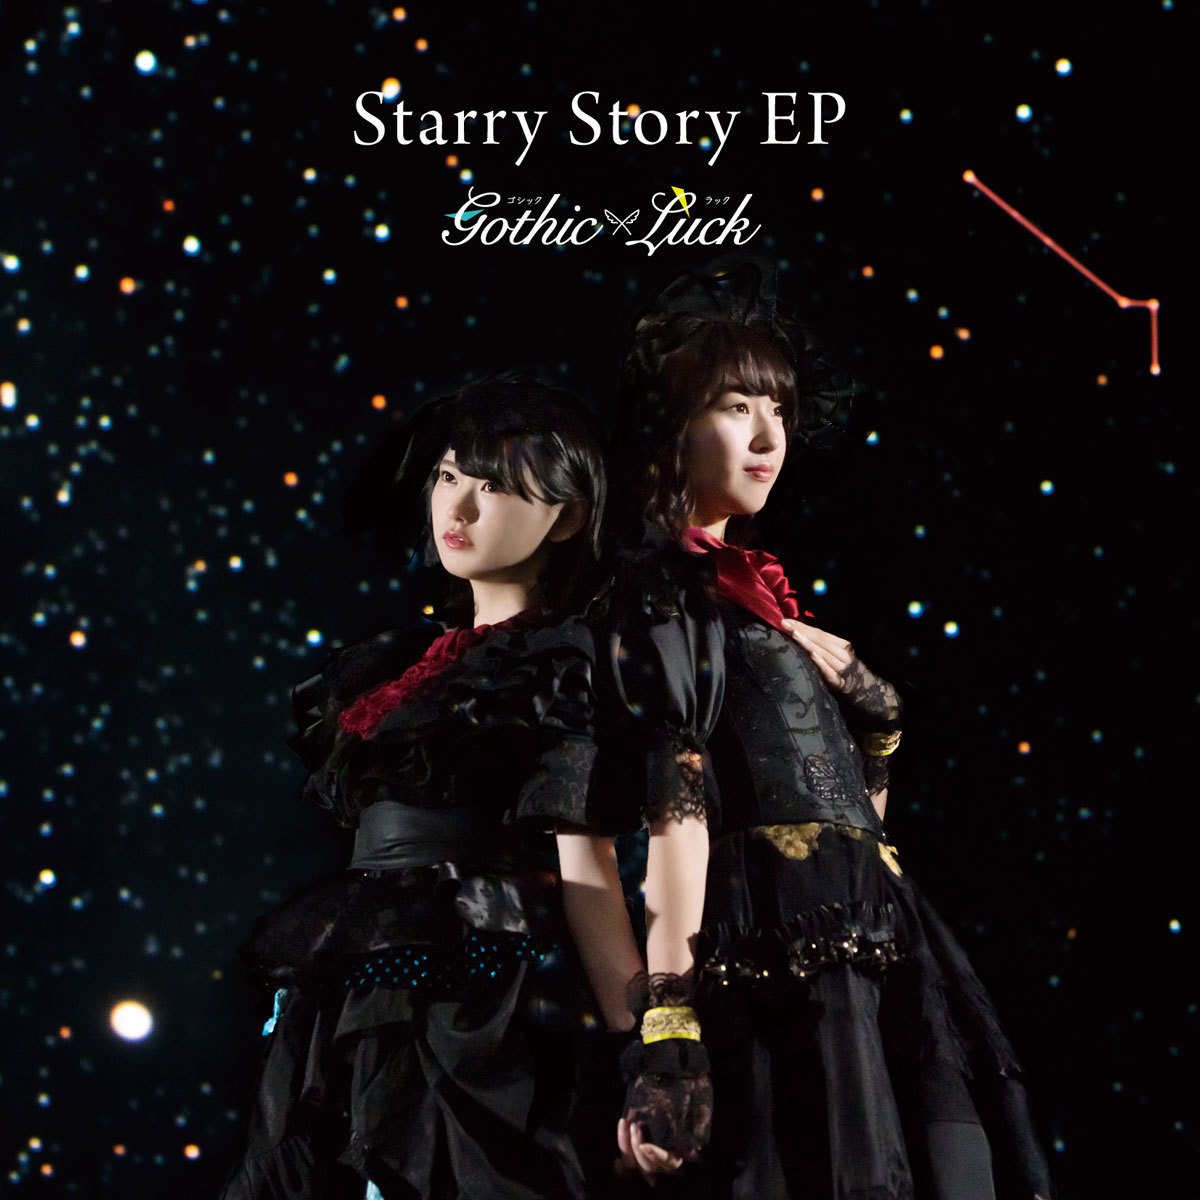 Gothic×Luck「Starry Story」 EP 通常盤 (C)けものフレンズプロジェクト2A